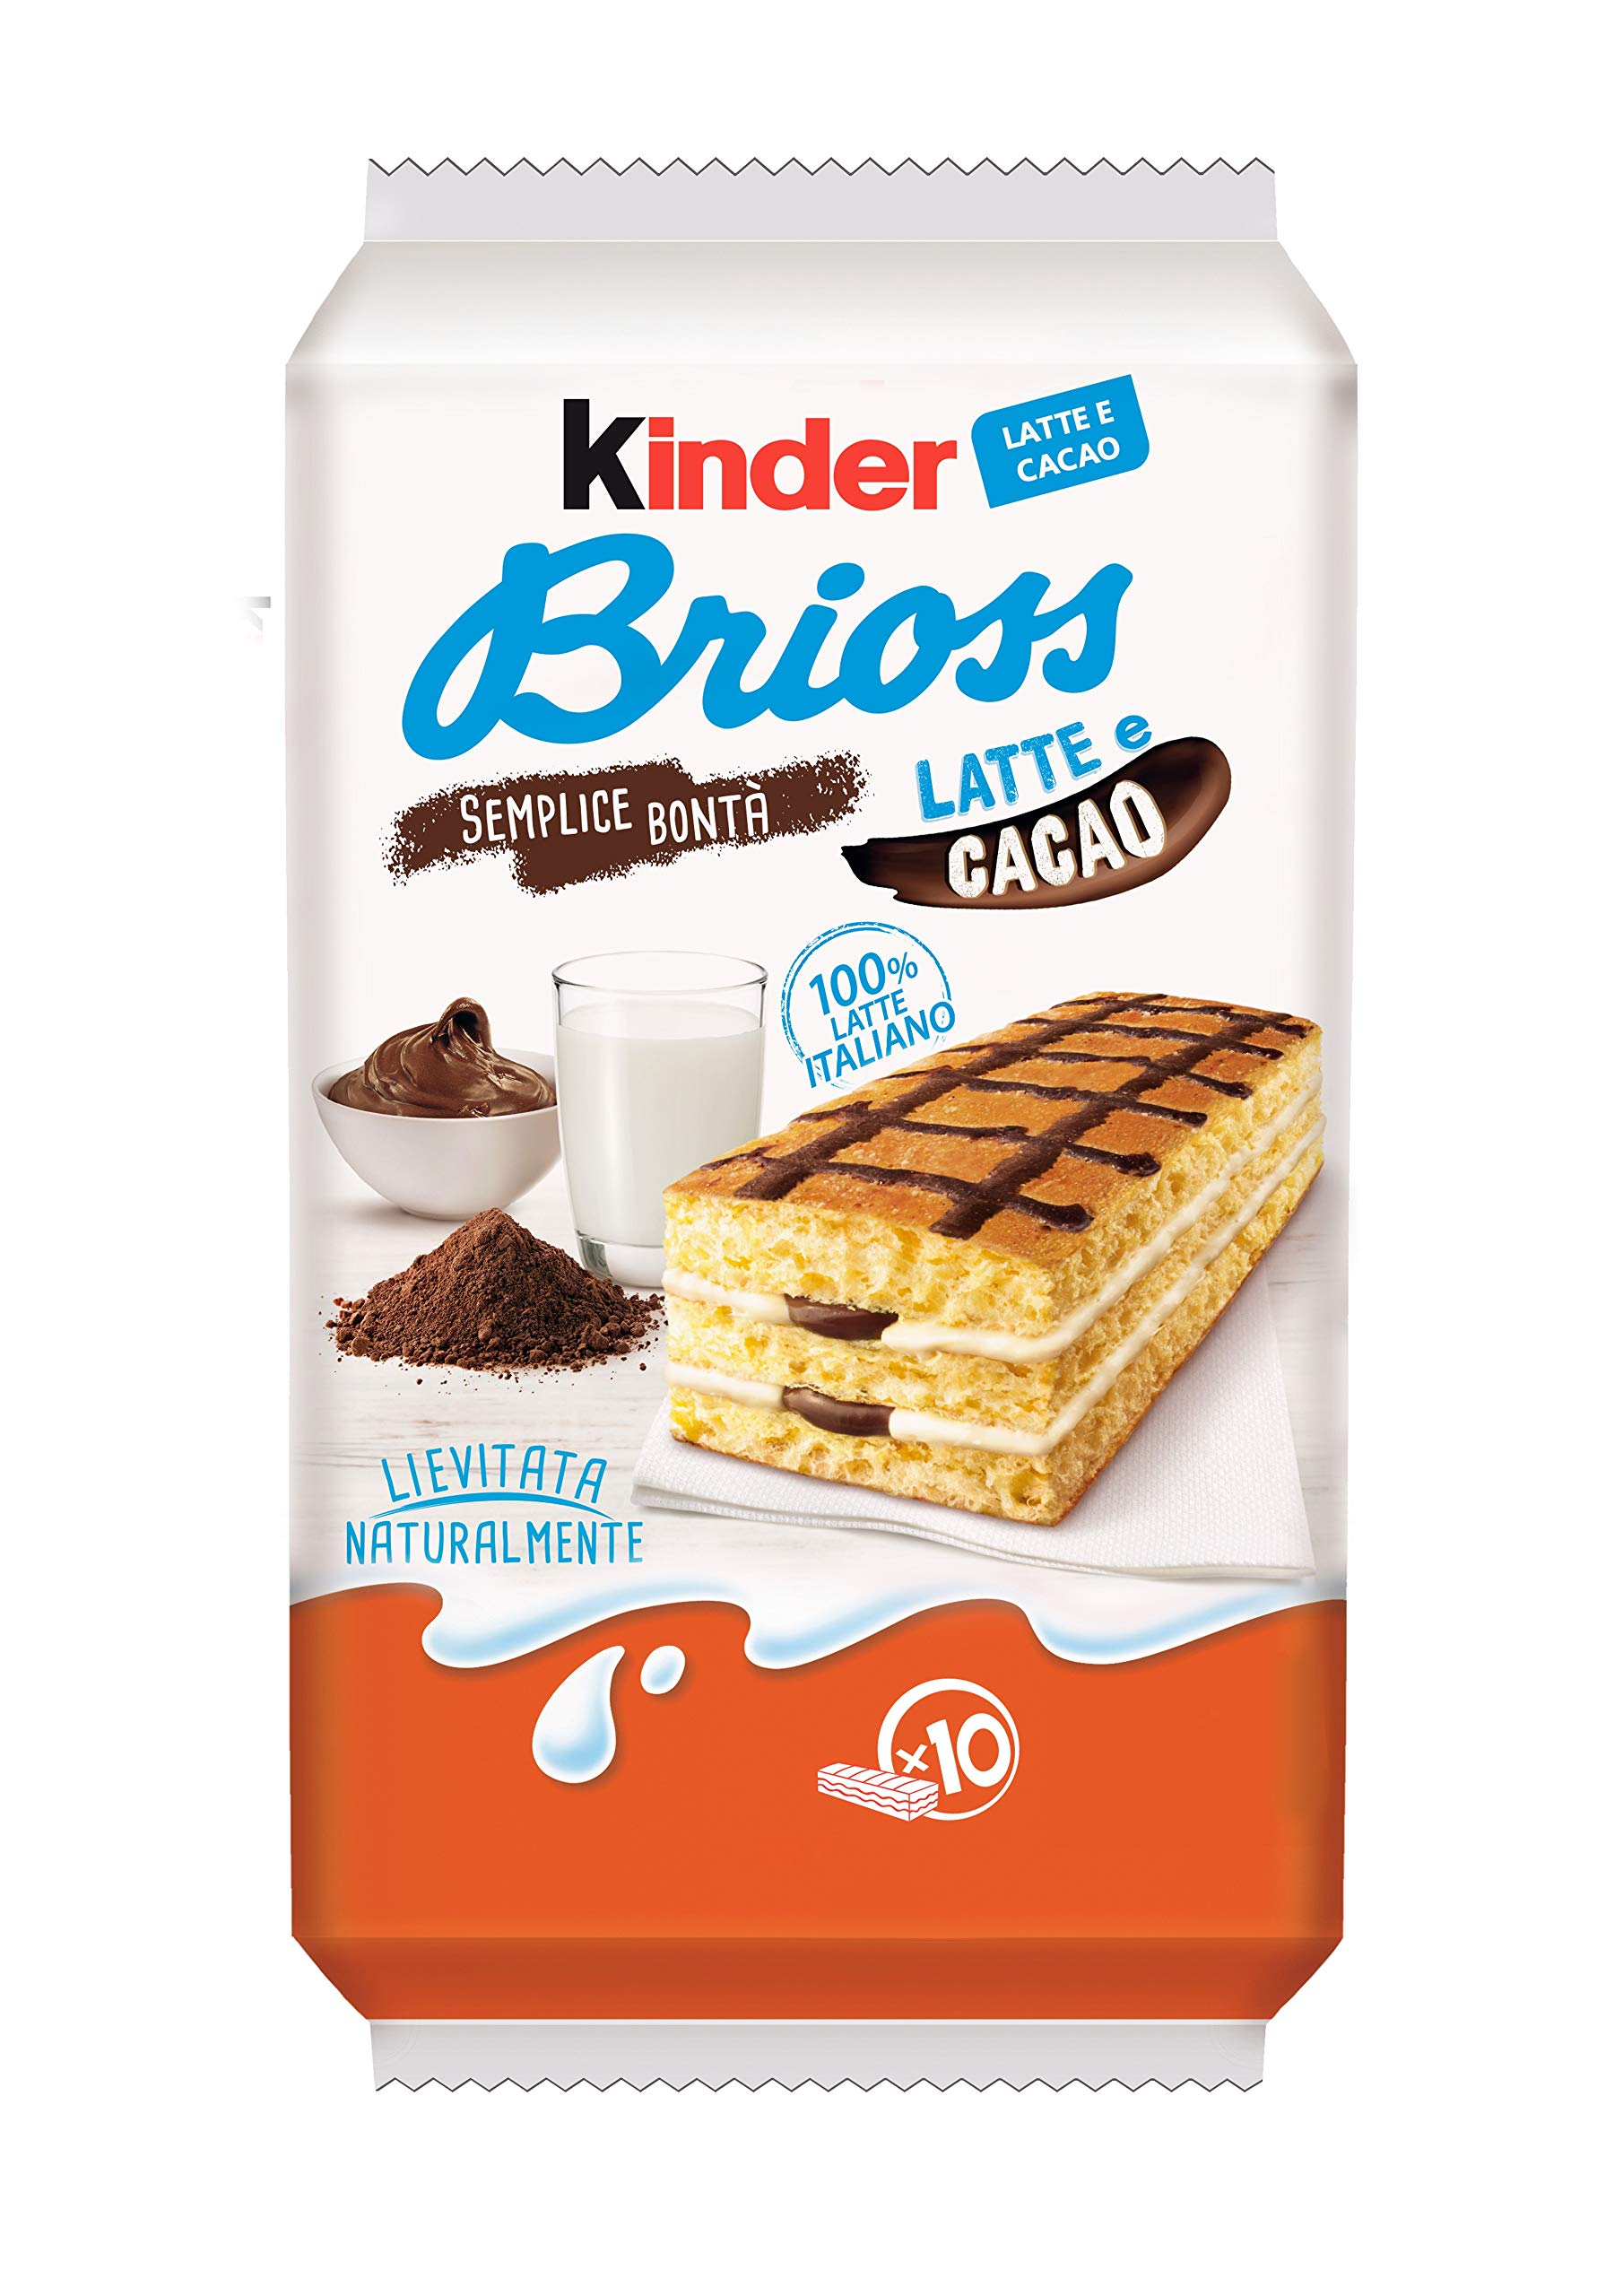 KINDER BRIOSS LATTE E CACAO From Italy 10 Pieces